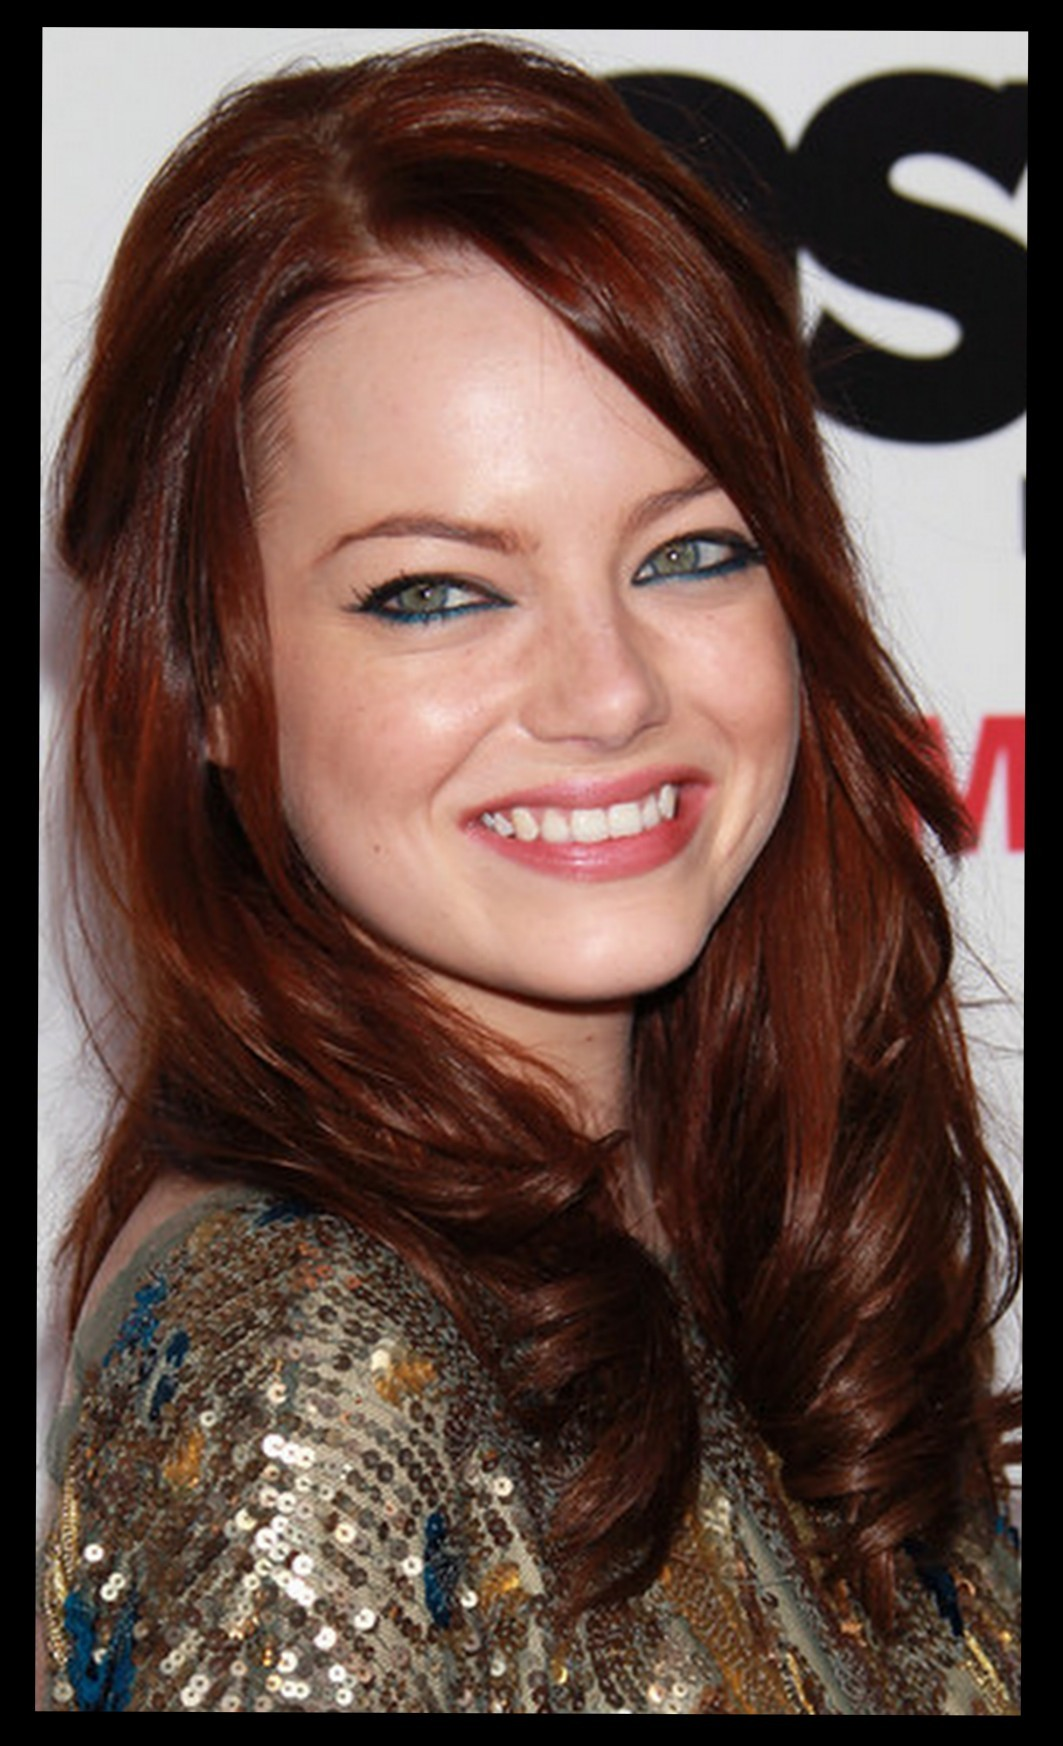 Emma Stone sports new strawberry blond hair color